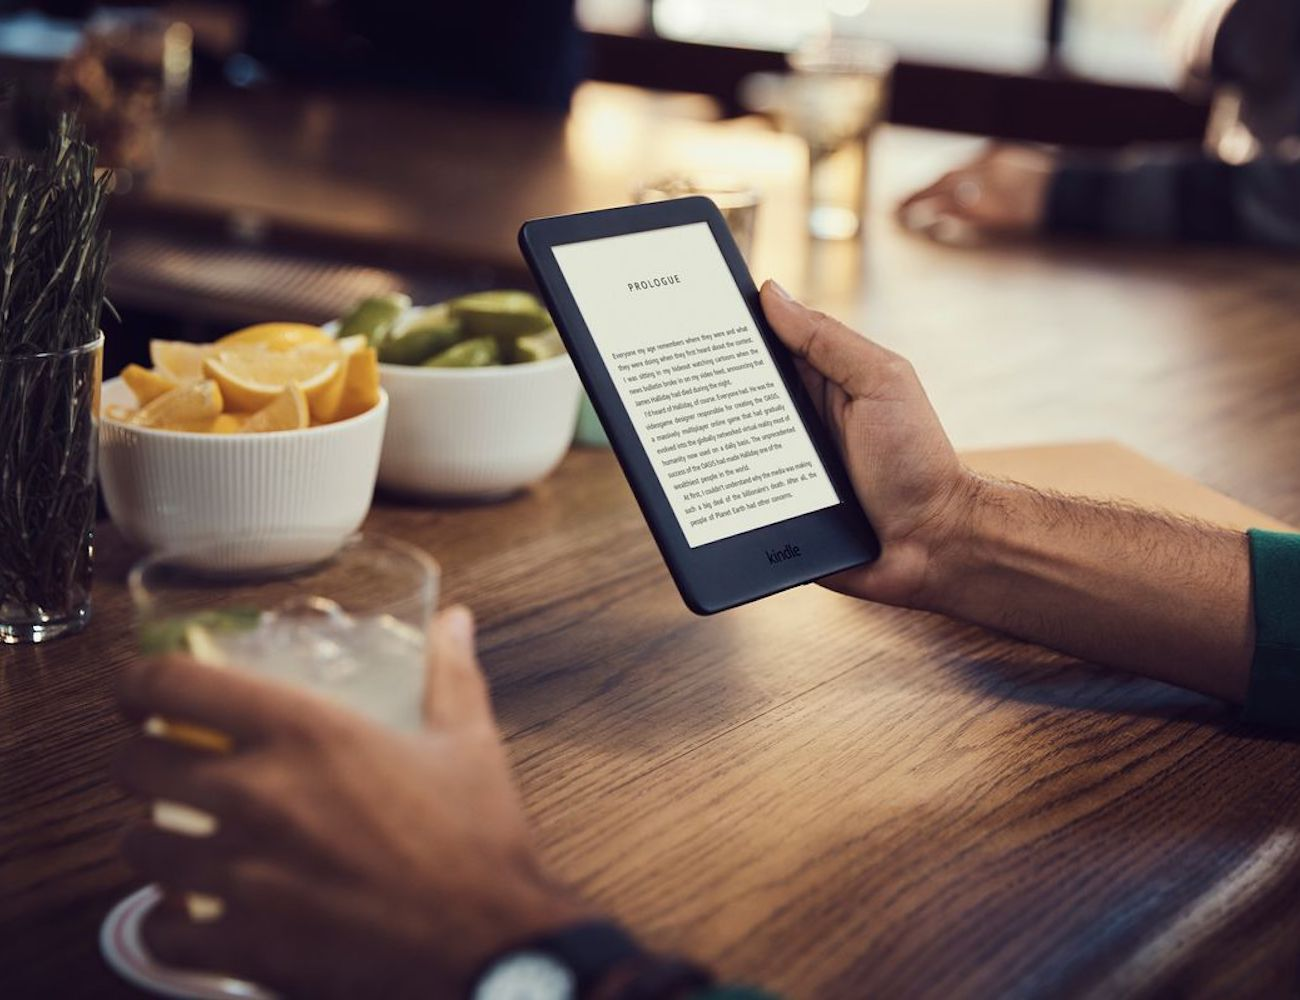 Kindle Built-In Front Light E-Reader lets you read indoors and outdoors